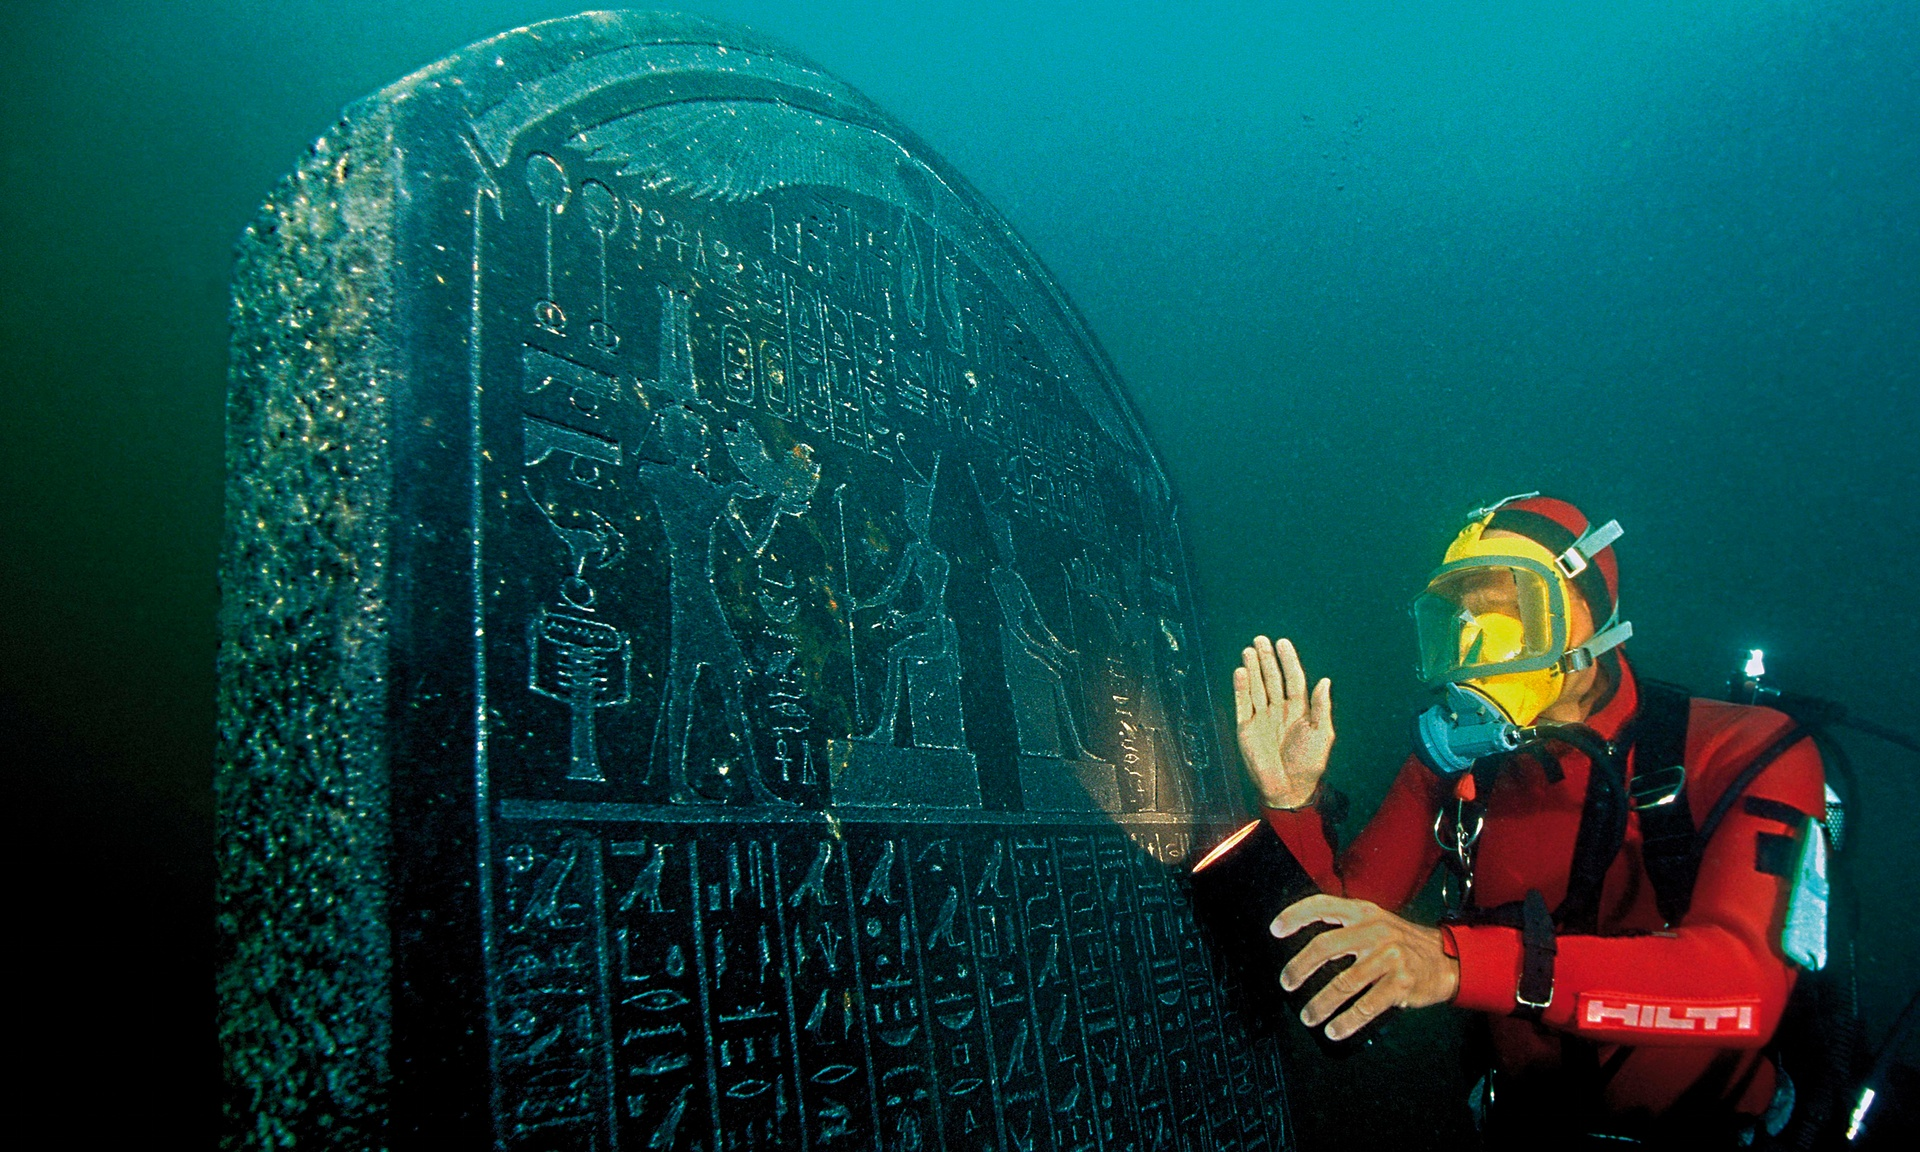 A diver with a large tablet carrying a royal decree from the pharaoh Nectanebo I, which will feature in the British Museum exhibition. Photograph: Christoph Gerigk/Franck Goddio/Hilti Foundation